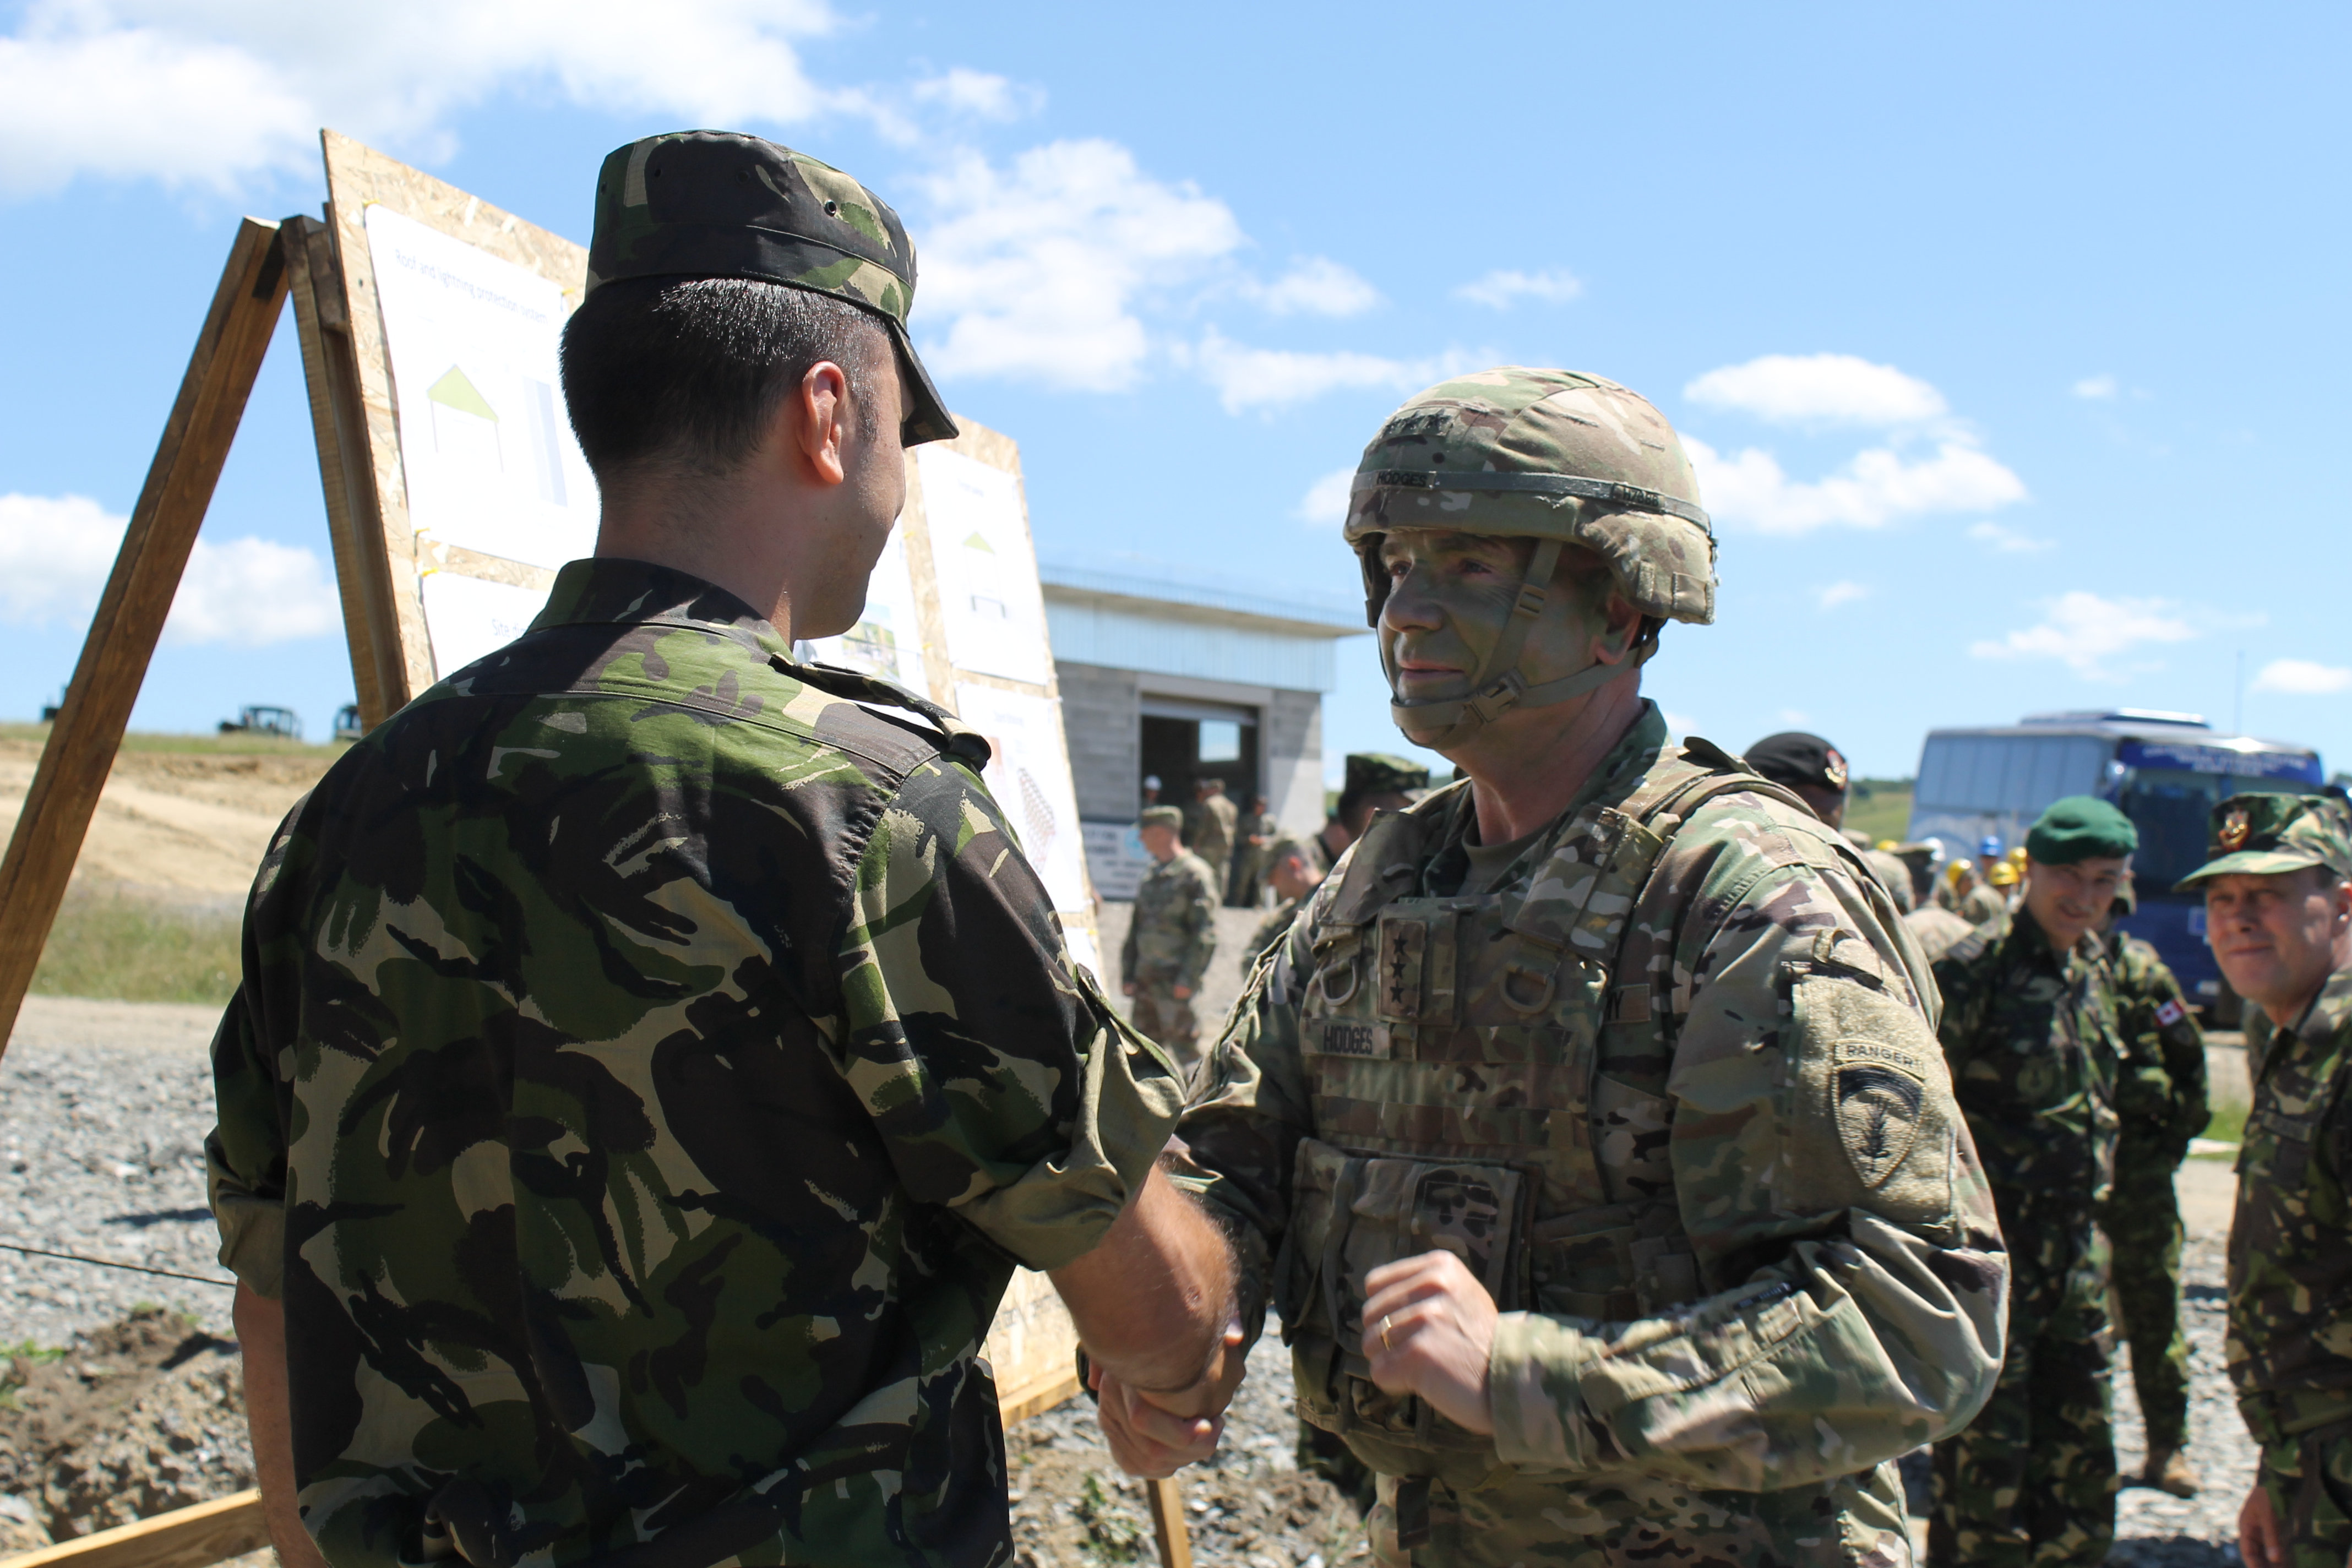 Lt. Gen. Ben Hodges gives a Romanian soldier a coin following the soldier's presentation on the multipurpose structure as part of Resolute Castle. The soldiers were challenged to build the facilities by an onslaught of rain storms throughout the spring and summer but were nearing completion on most projects by July 14 in time for a distinguished visitors day. (Jen Judson/Staff)